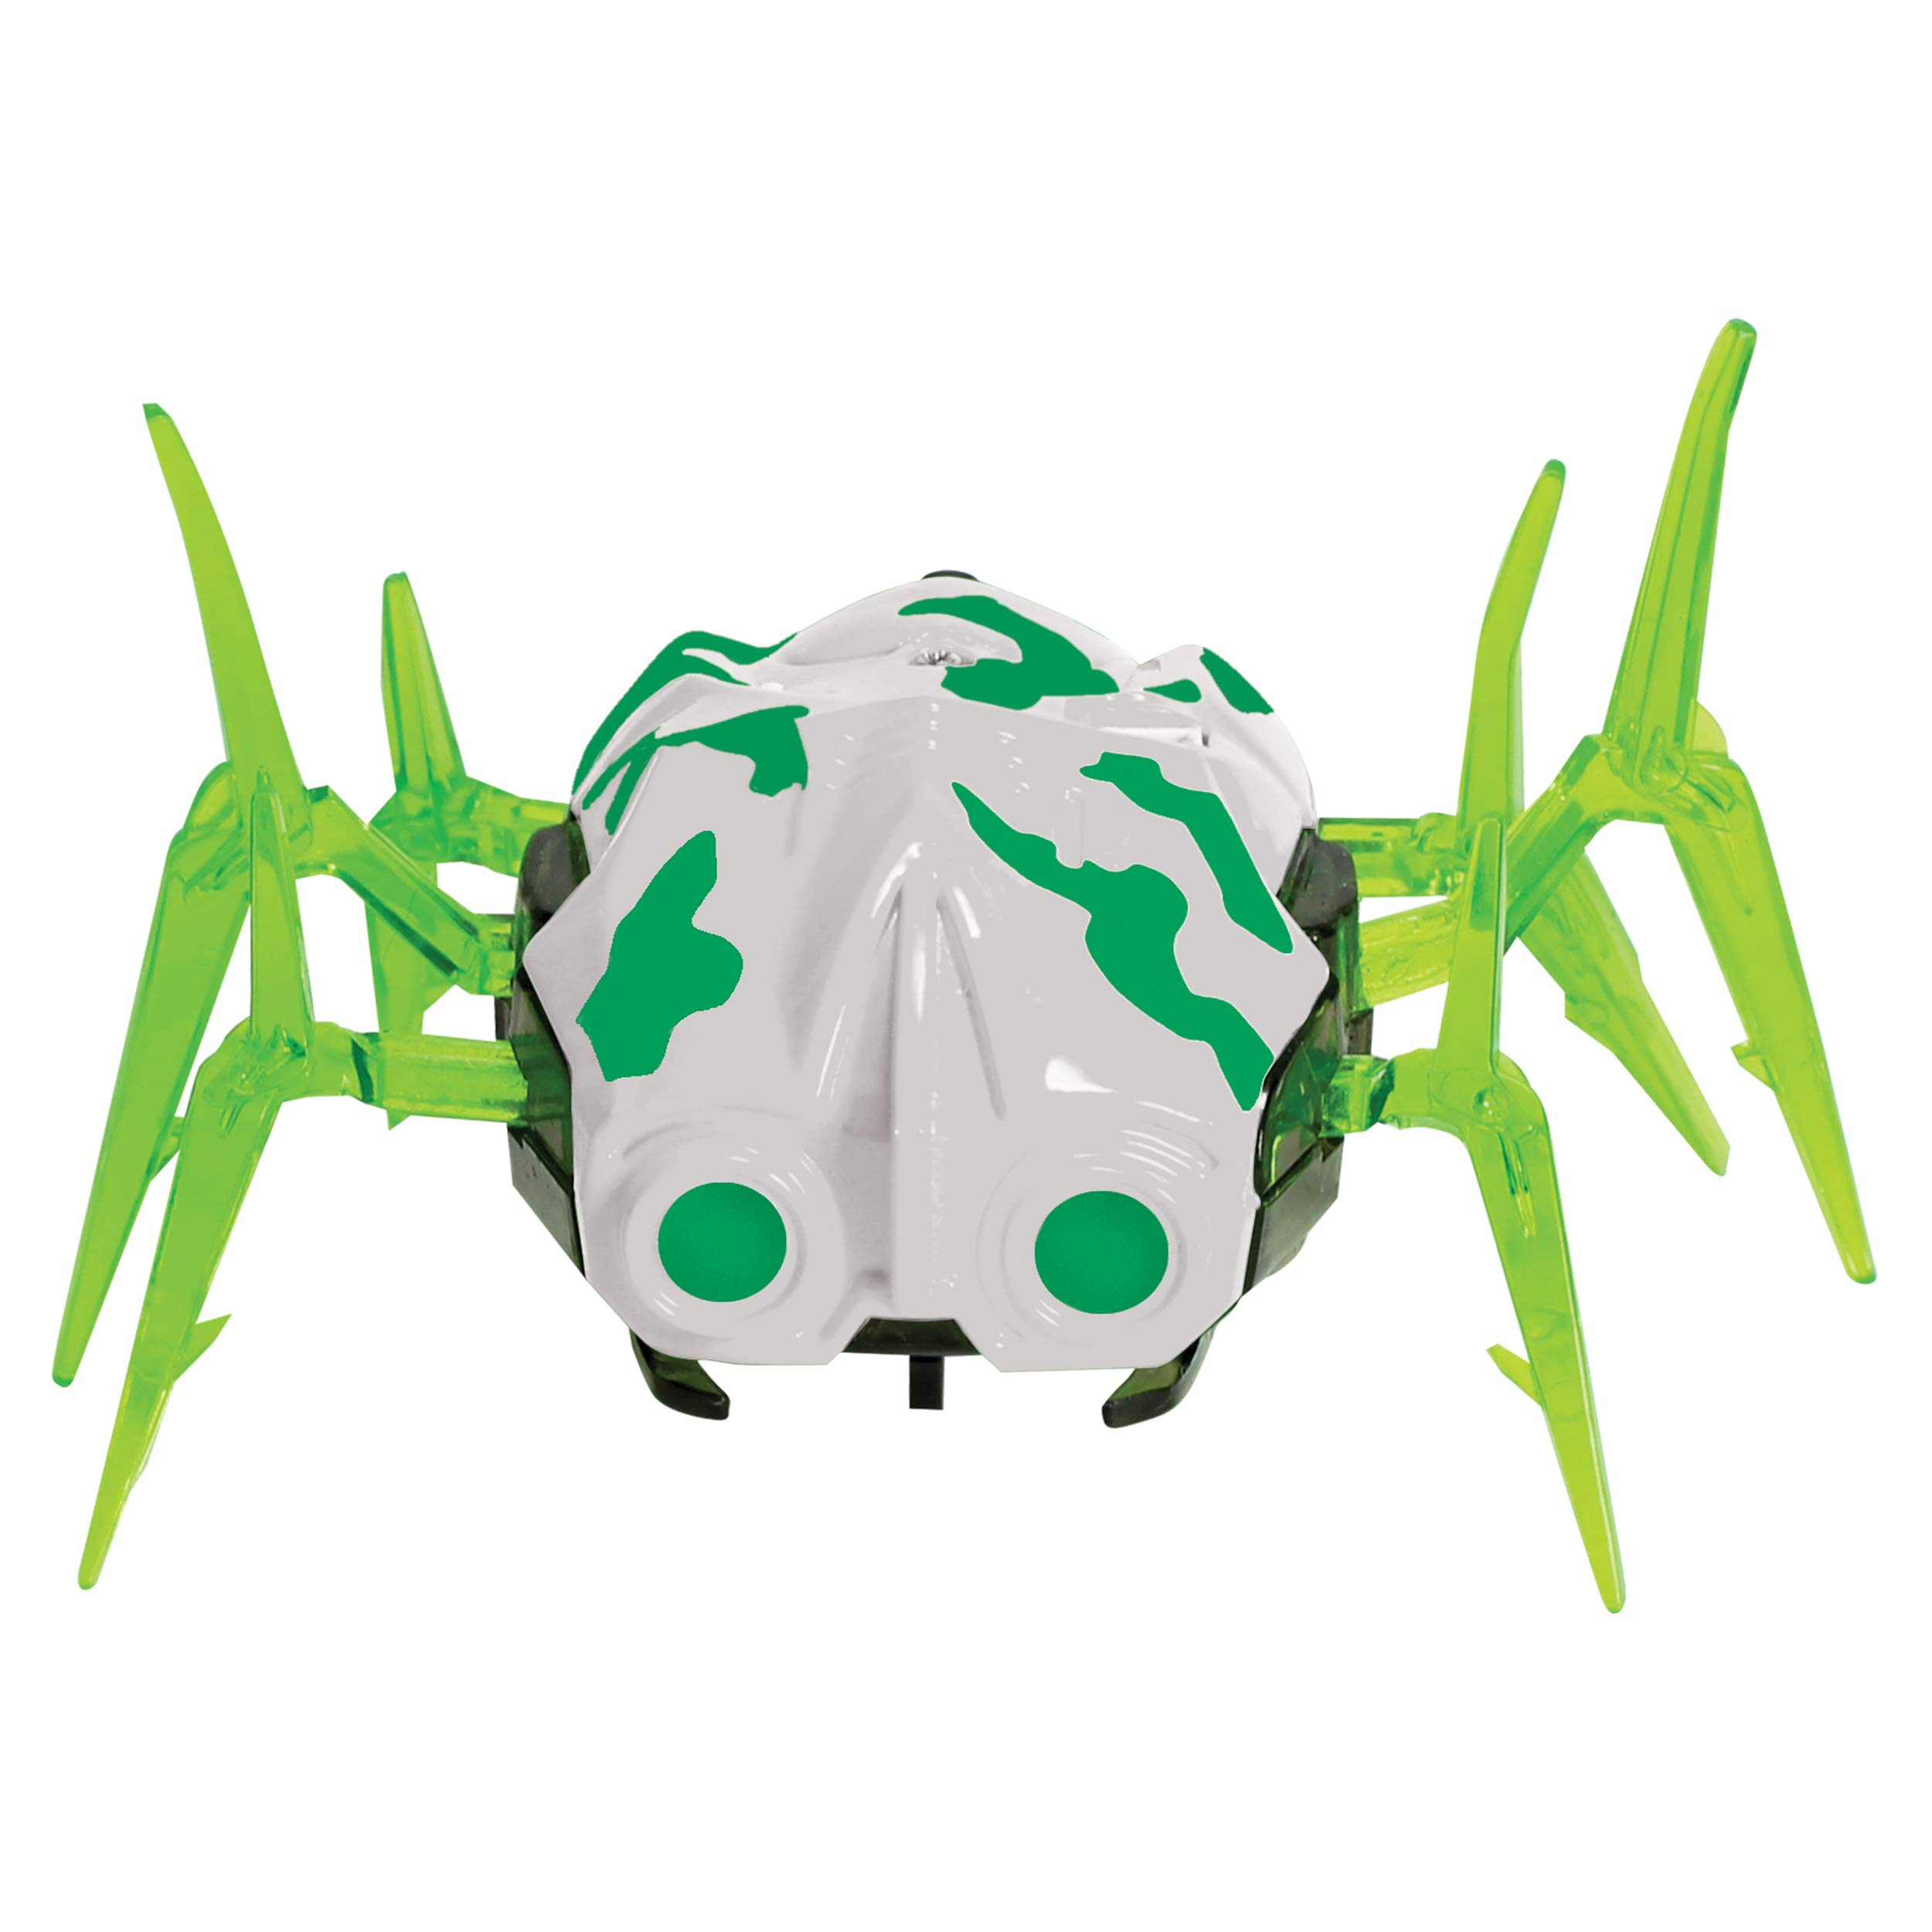 Kidzlane Laser Spider Target – Robot Bug Crawls Around and Flips Over When Hit! – Fun Addition to Laser Tag Sets – for Ages 8+